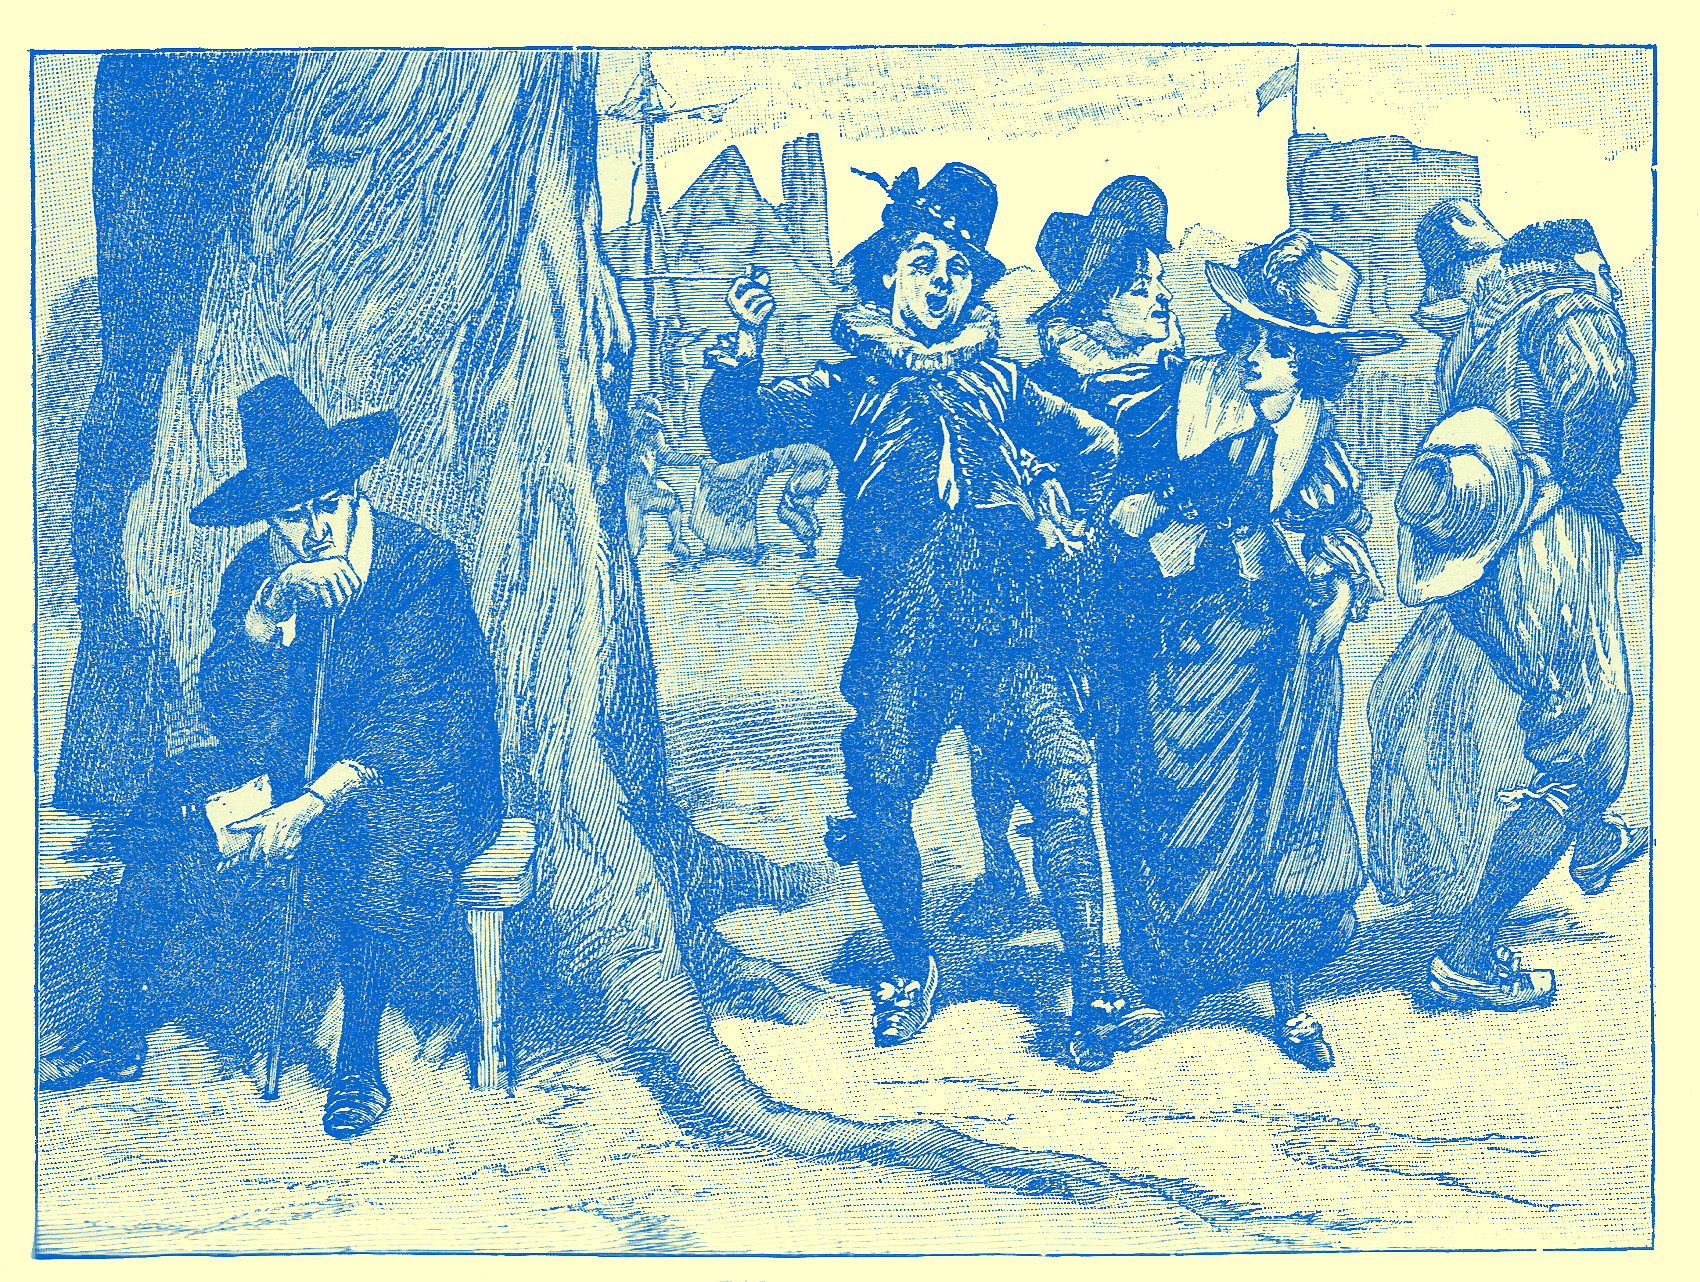 An Engraving of a frowning puritanical figure in black with a small ruff and black hat, sitting on a bench at the base of a large tree, with his hand to his mouth. Next to hom are walked a group of five people, two women and three men, with gay clothing and enjoying themselves, to appear to be dancing as they go.